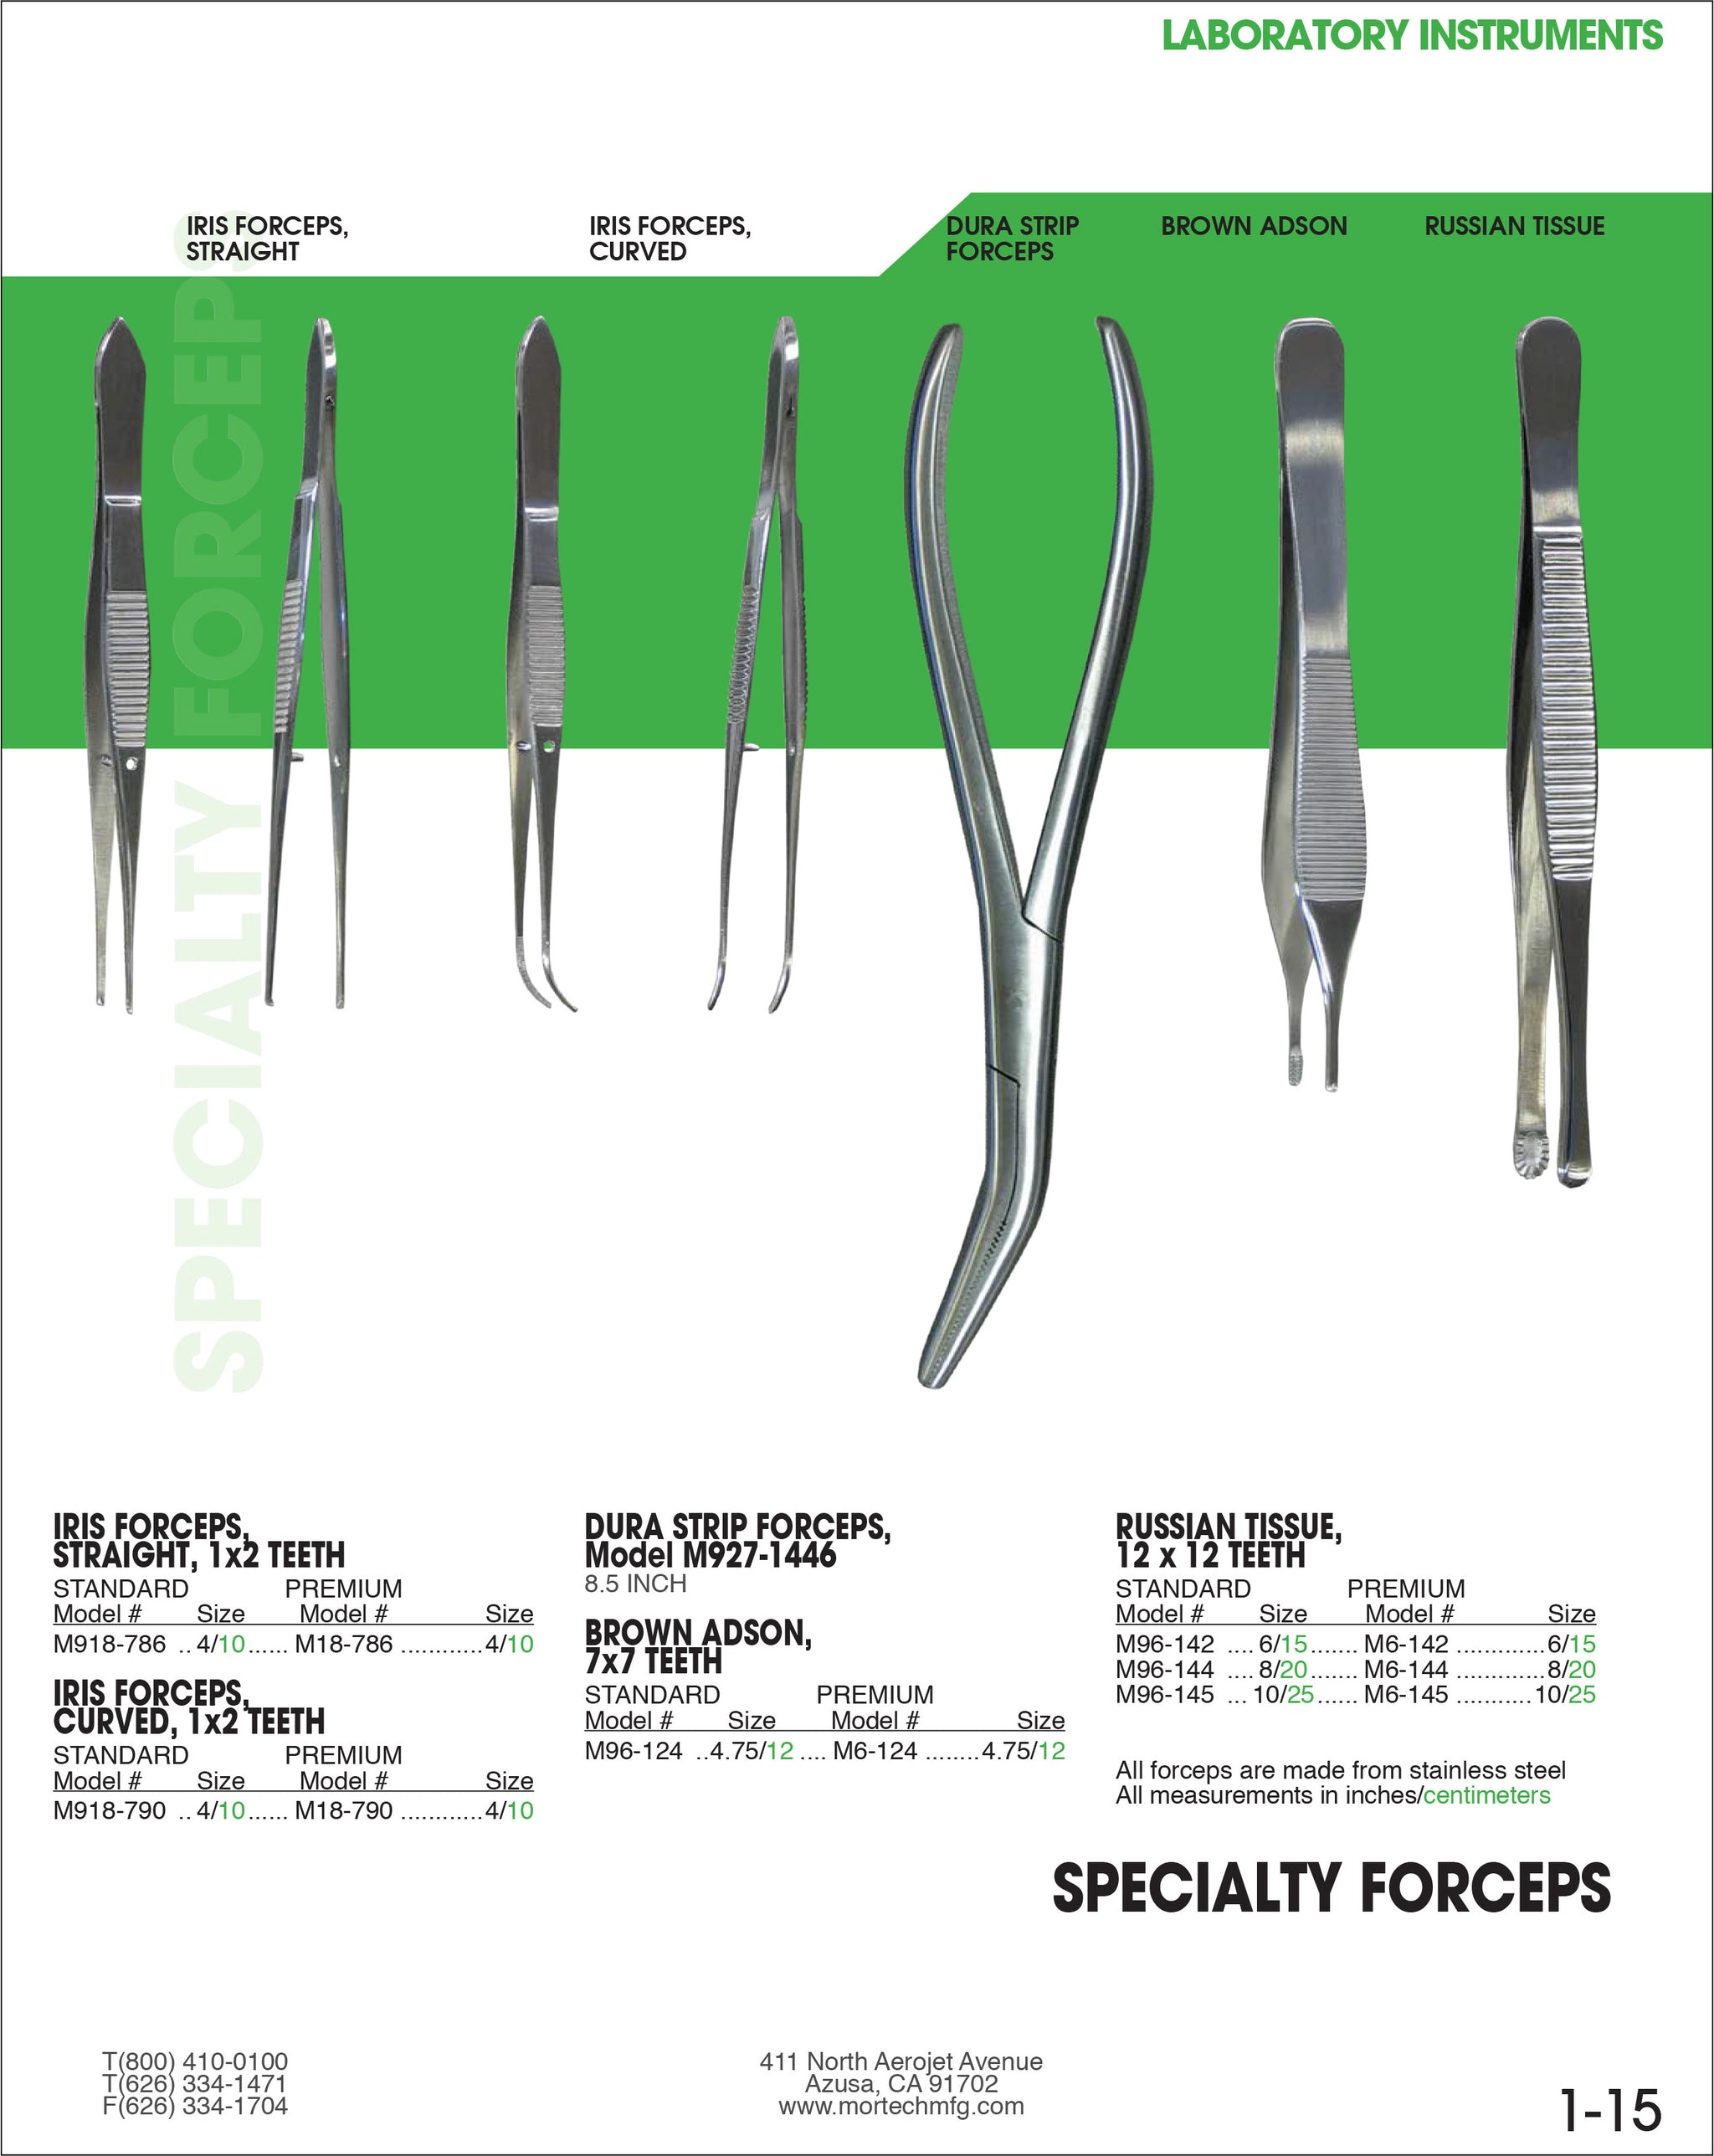 Russian Tissue Forceps-Dissecting Instruments-Mortech Manufacturing Company Inc. Quality Stainless Steel Autopsy, Morgue, Funeral Home, Necropsy, Veterinary / Anatomy, Dissection Equipment and Accessories